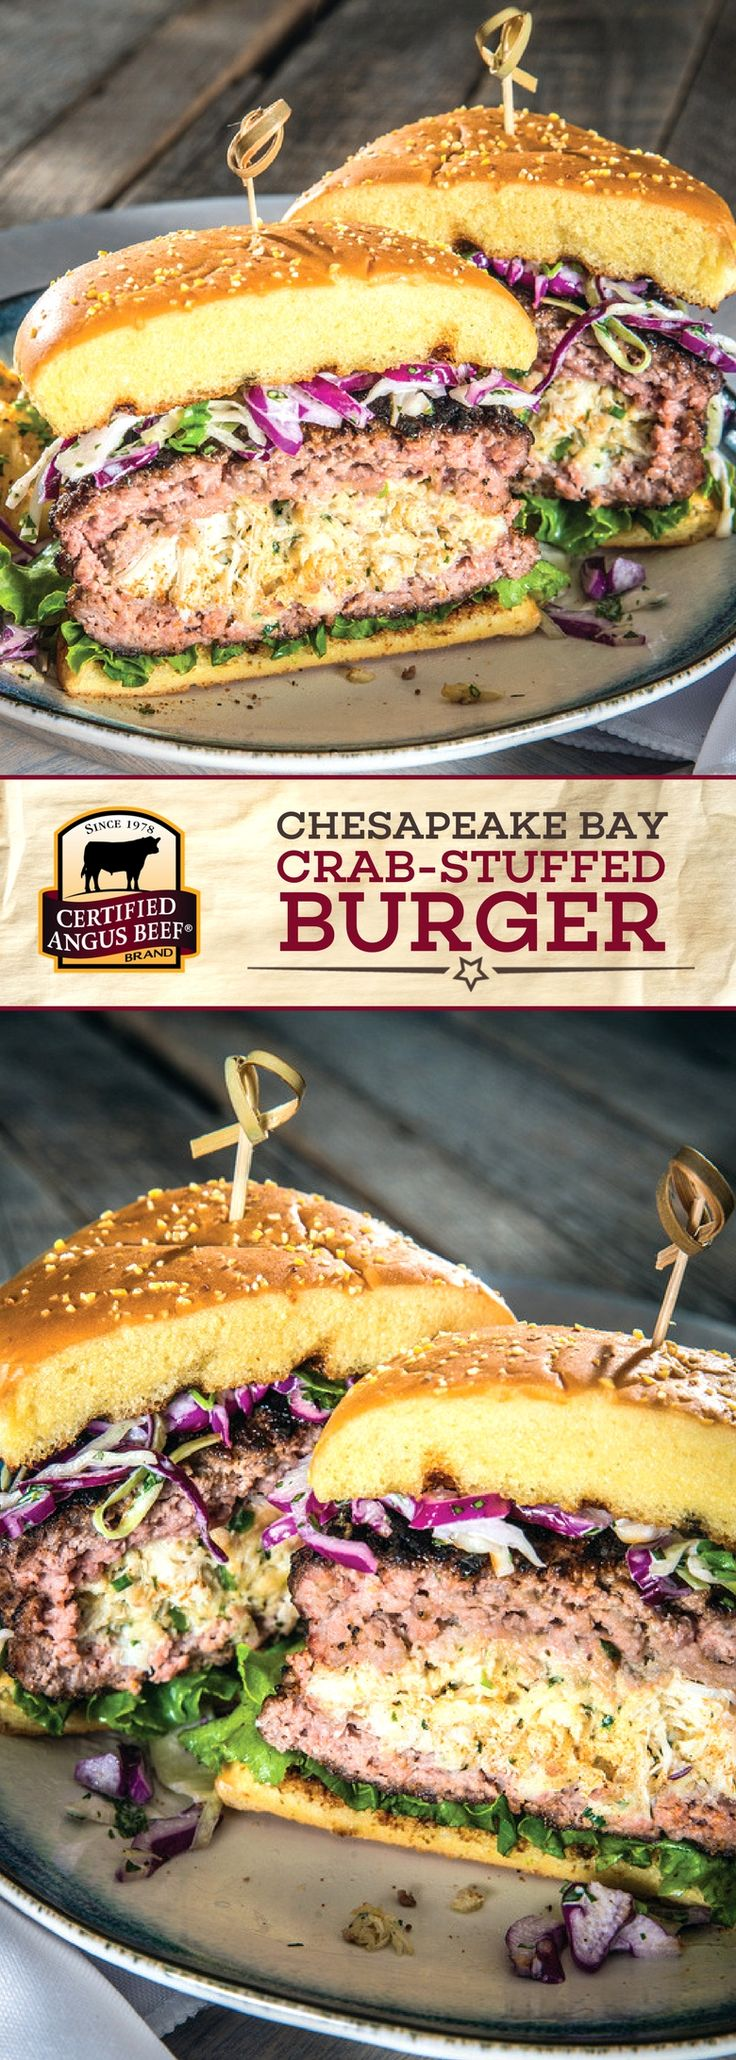 Certified Angus Beef®️️️️ brand Chesapeake Bay Crab-stuffed Burger is a MUST TRY burger recipe! The best ground chuck is stuffed with lump crabmeat and then perfectly seasoned with Old Bay and a blend of zesty, spicy flavors for an unforgettable burger. Top with remoulade sauce or lemon aioli for the best eating experience! #bestangusbeef #certifiedangusbeef #beefrecipe #burgertime #oldbay